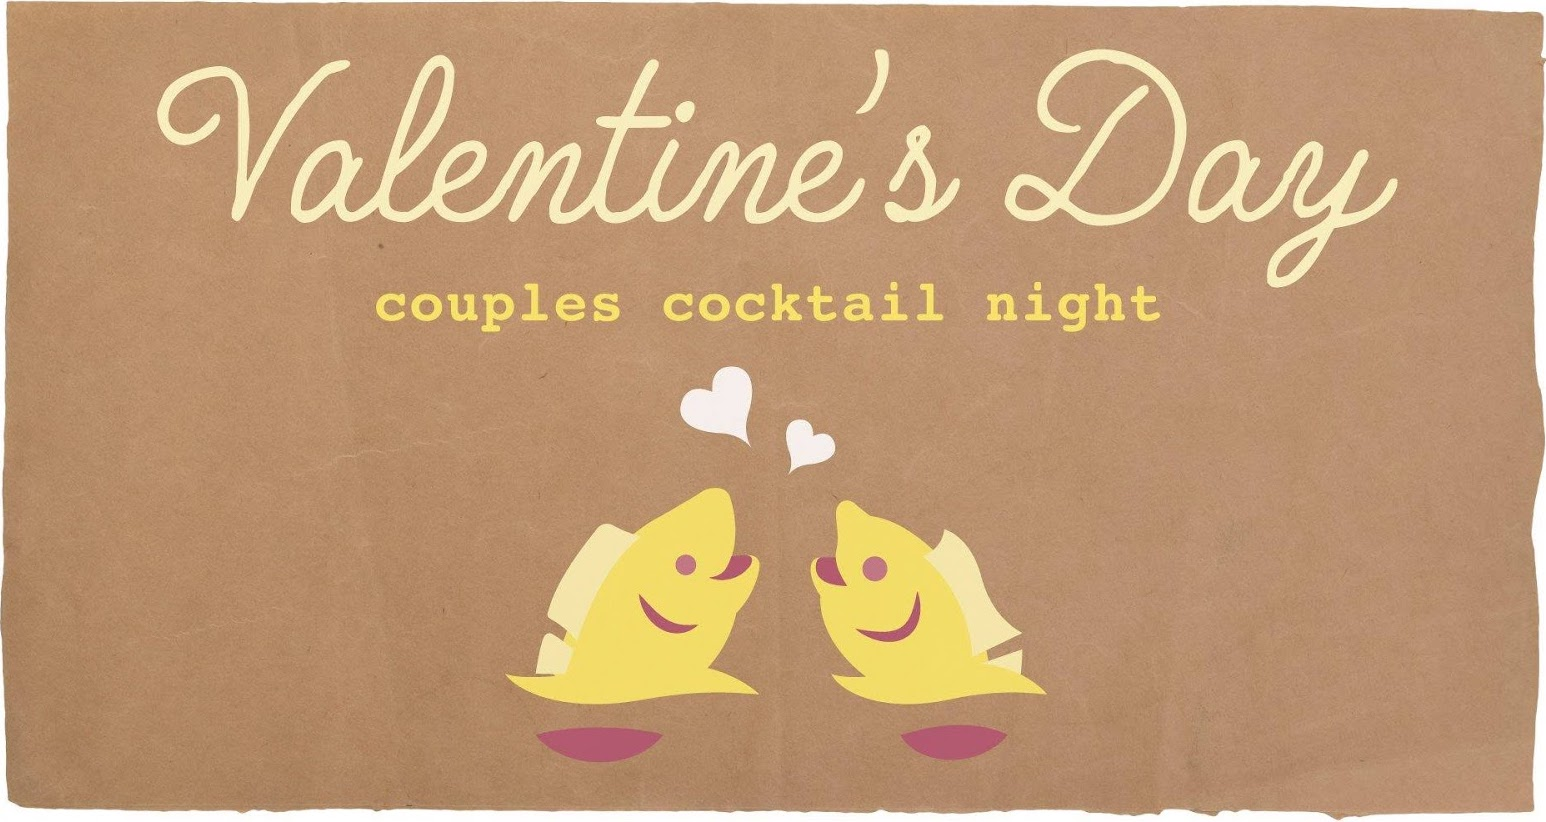 Couple Cocktail Night for Valentine's Day